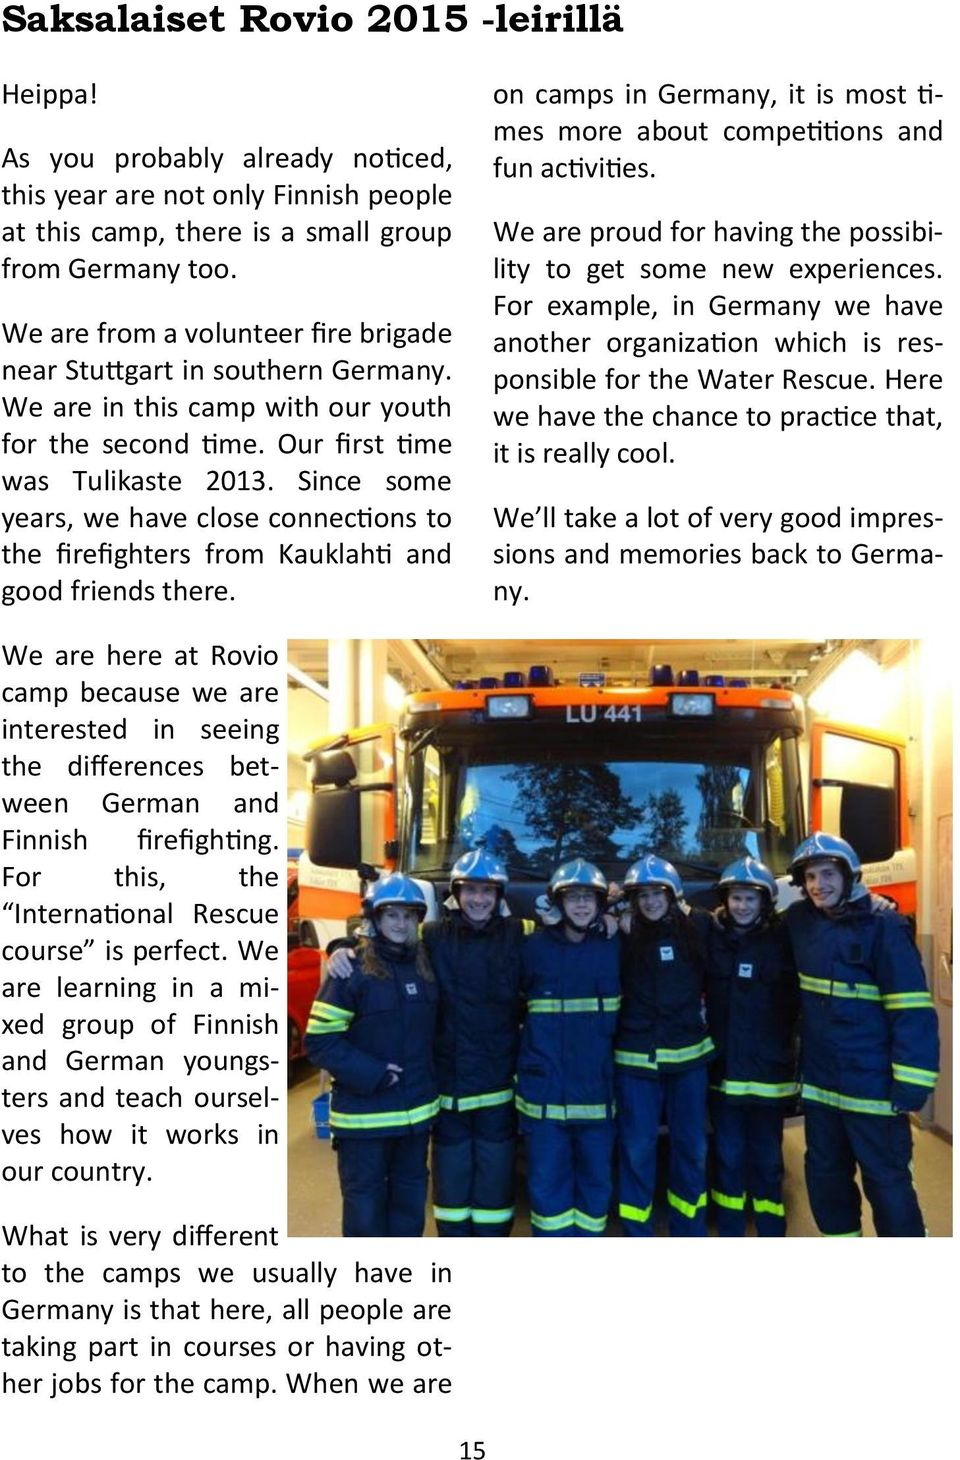 Since some years, we have close connections to the firefighters from Kauklahti and good friends there. on camps in Germany, it is most times more about competitions and fun activities.